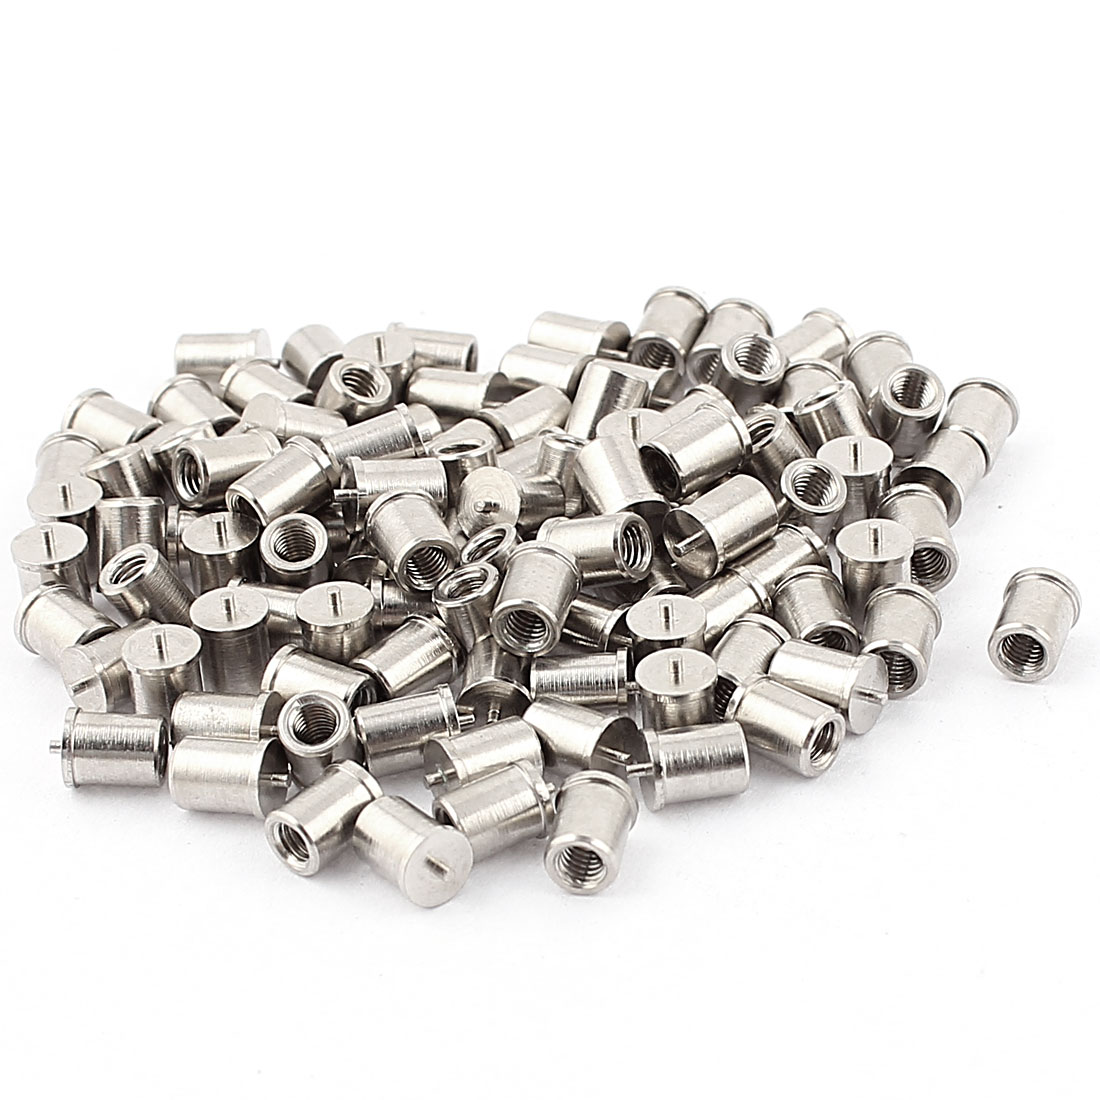 M3x6mm Female Thread Welding Stud Machinery Screws 100pcs w Soldered Dot